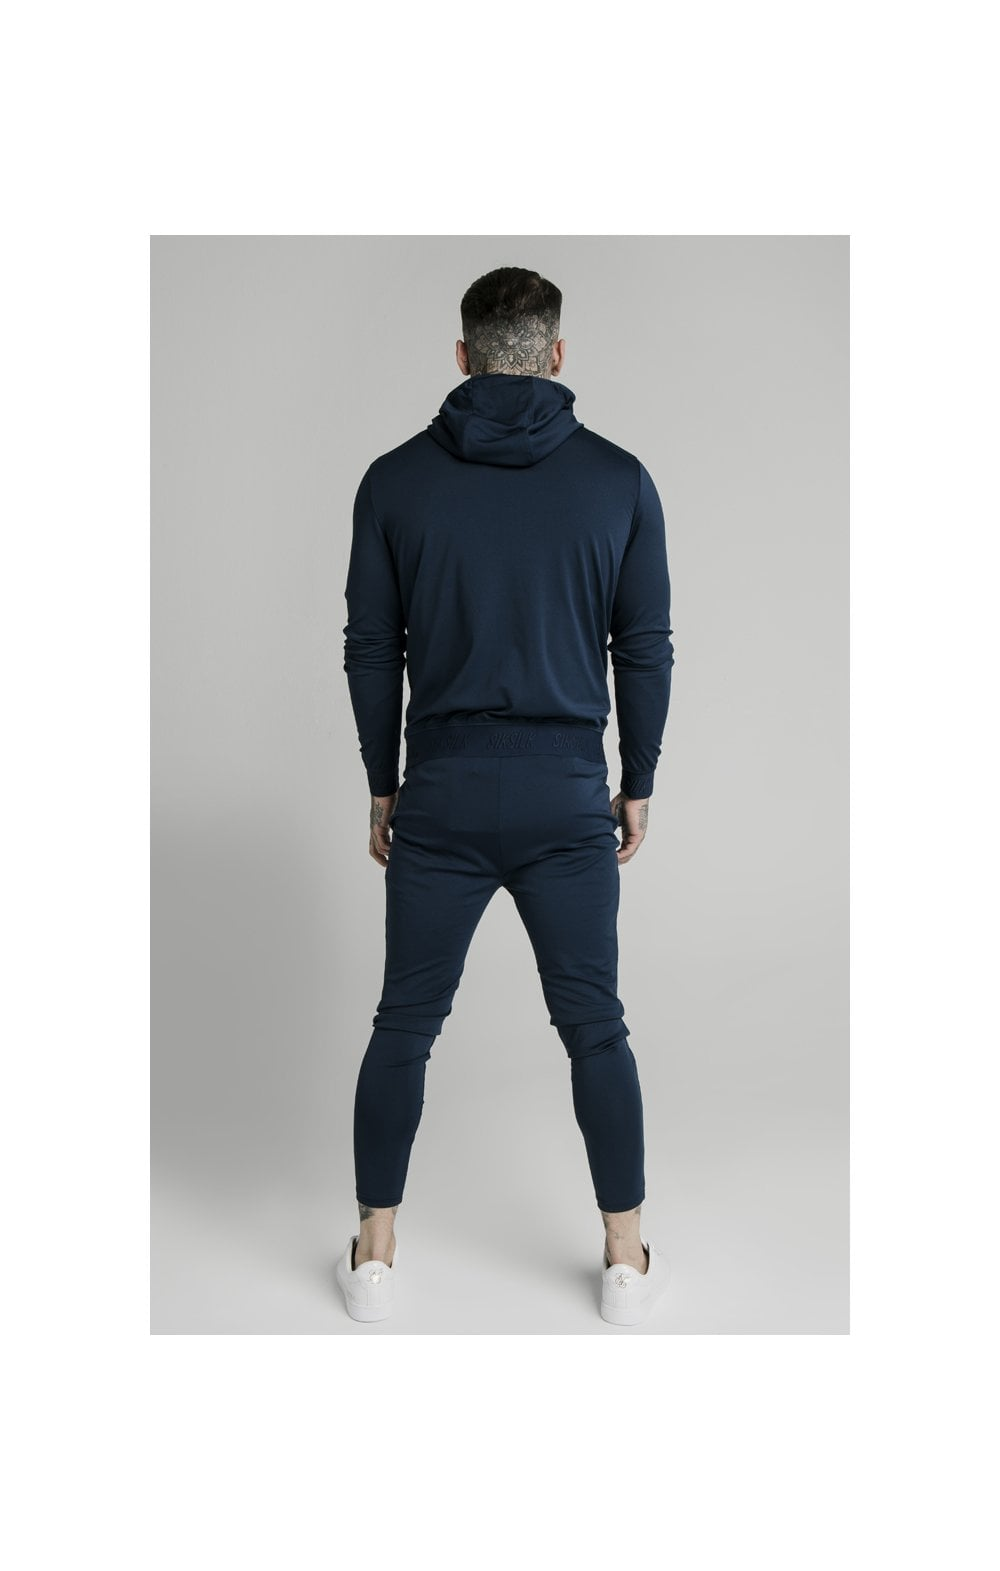 Load image into Gallery viewer, SikSilk Agility Zip Through Hoodie - Navy (4)